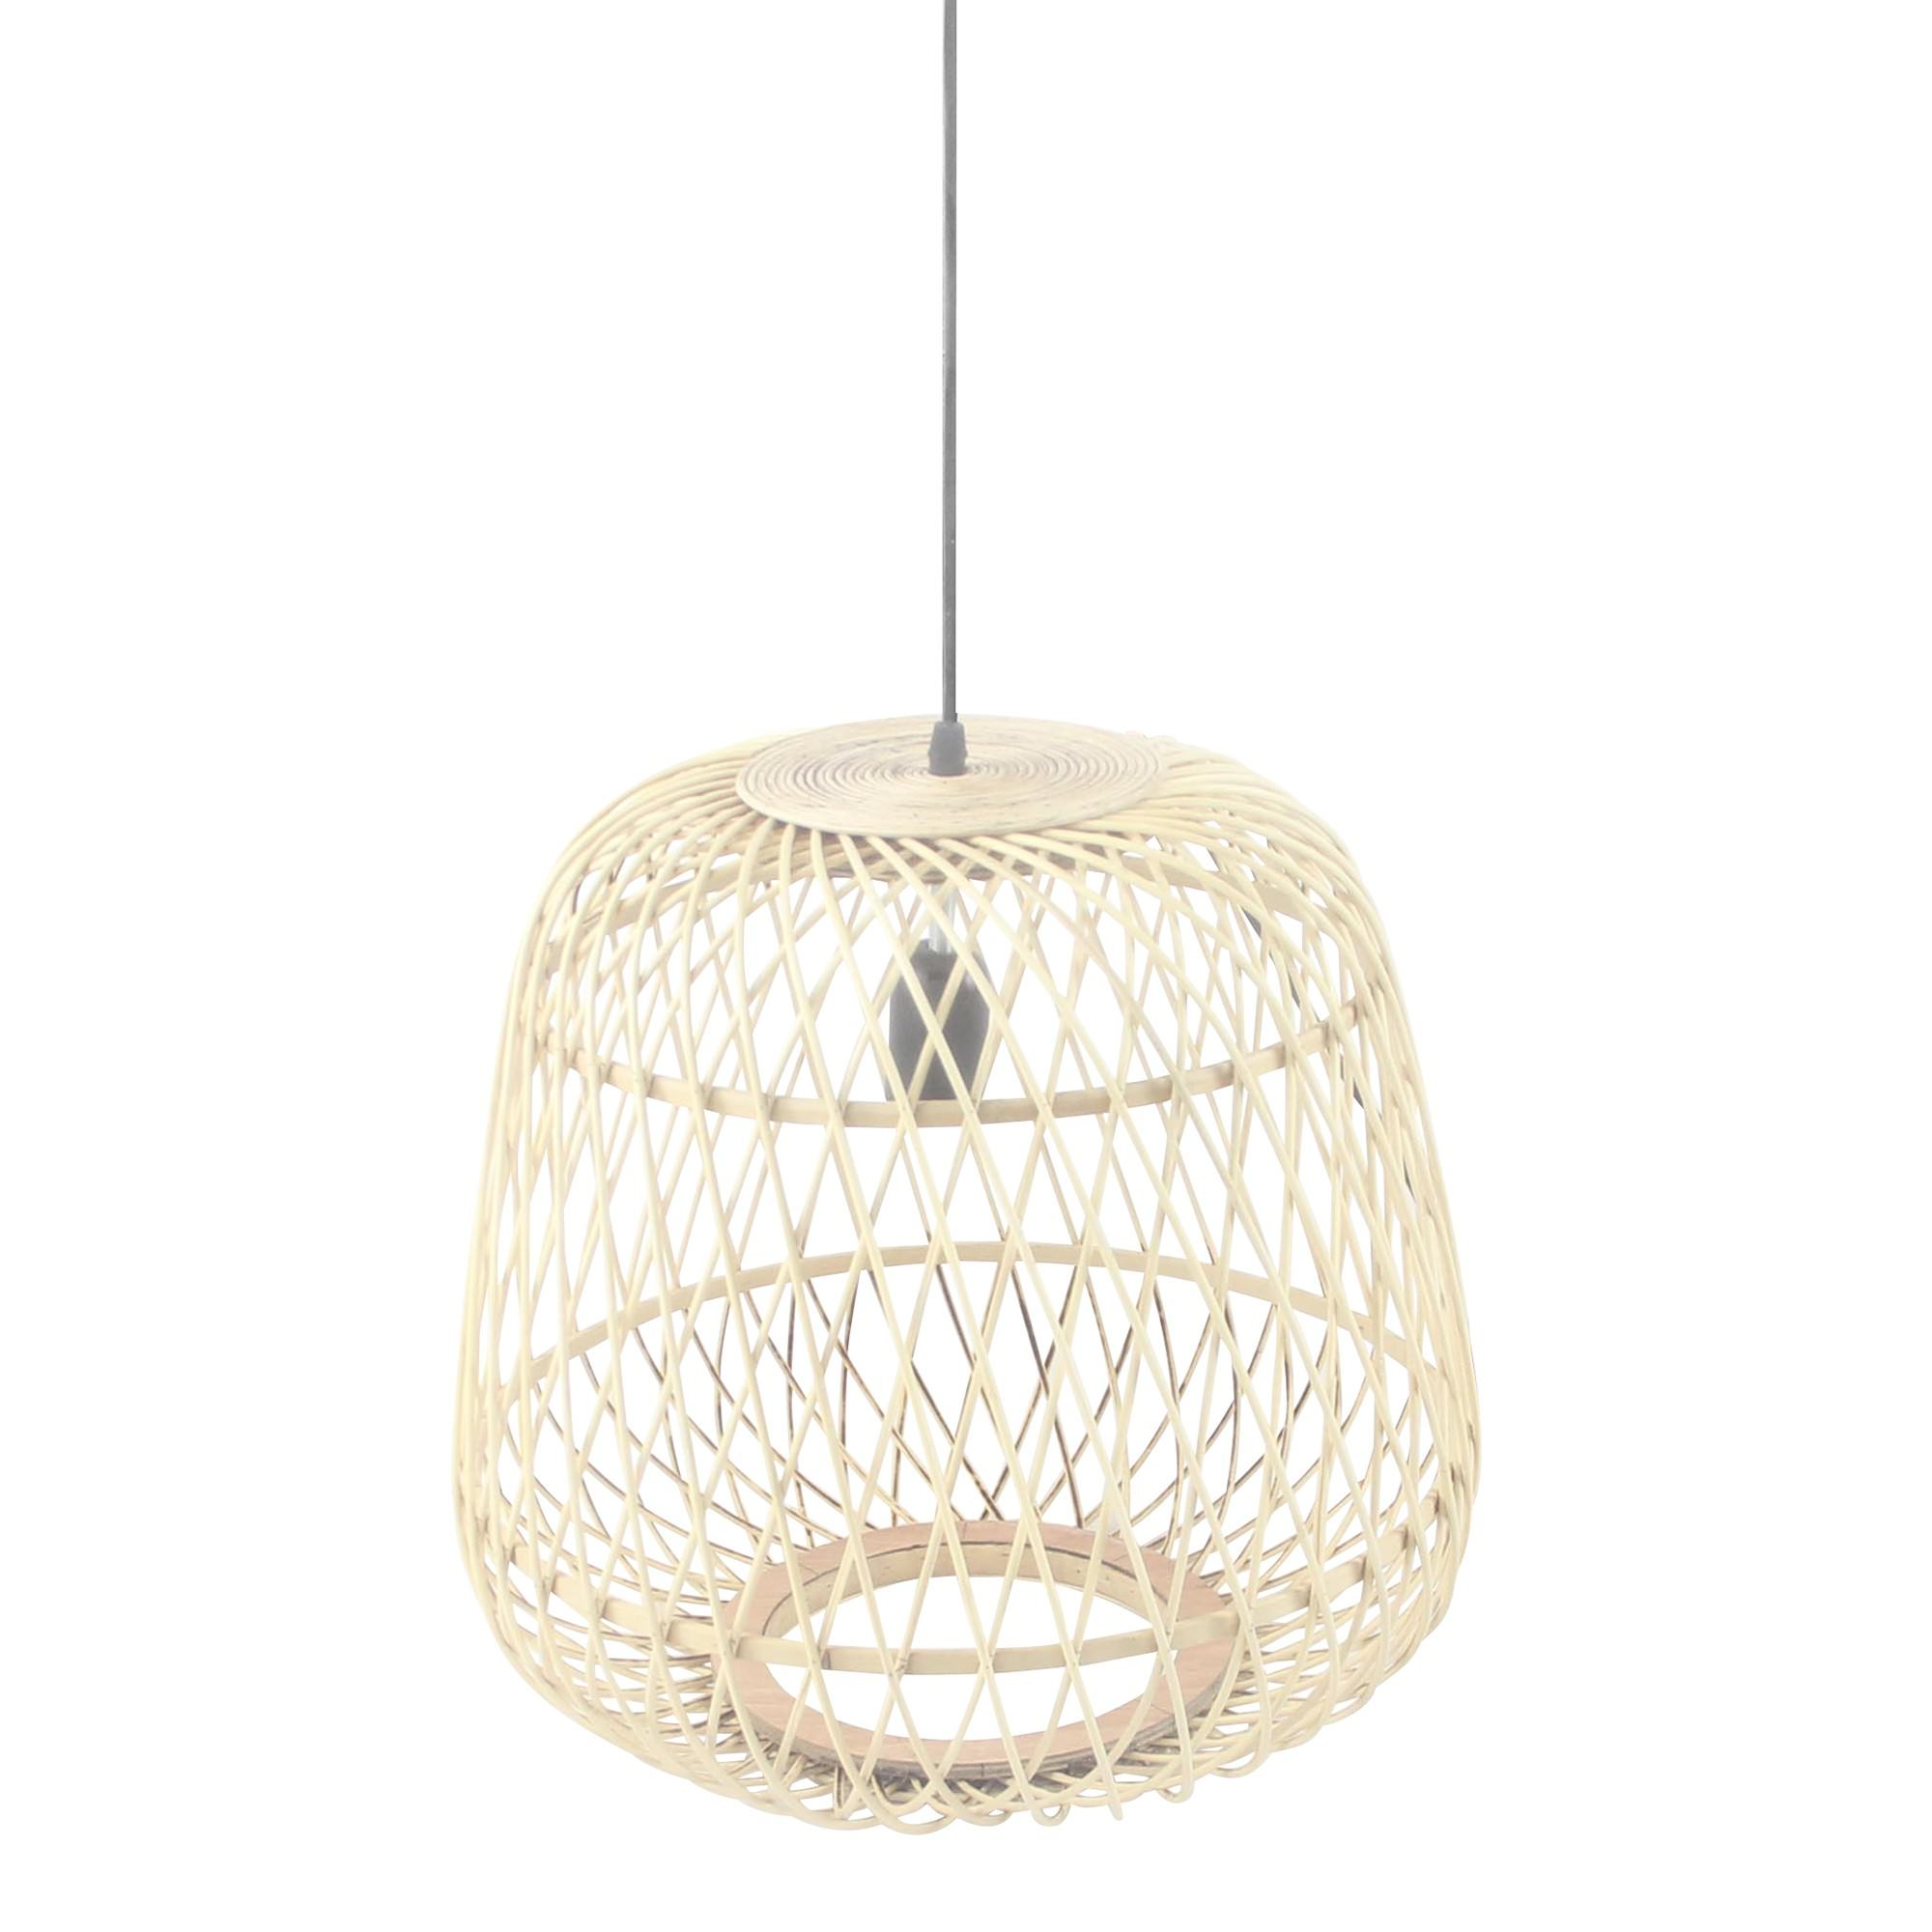 Pinehurst Rattan Pendant Light, Drum